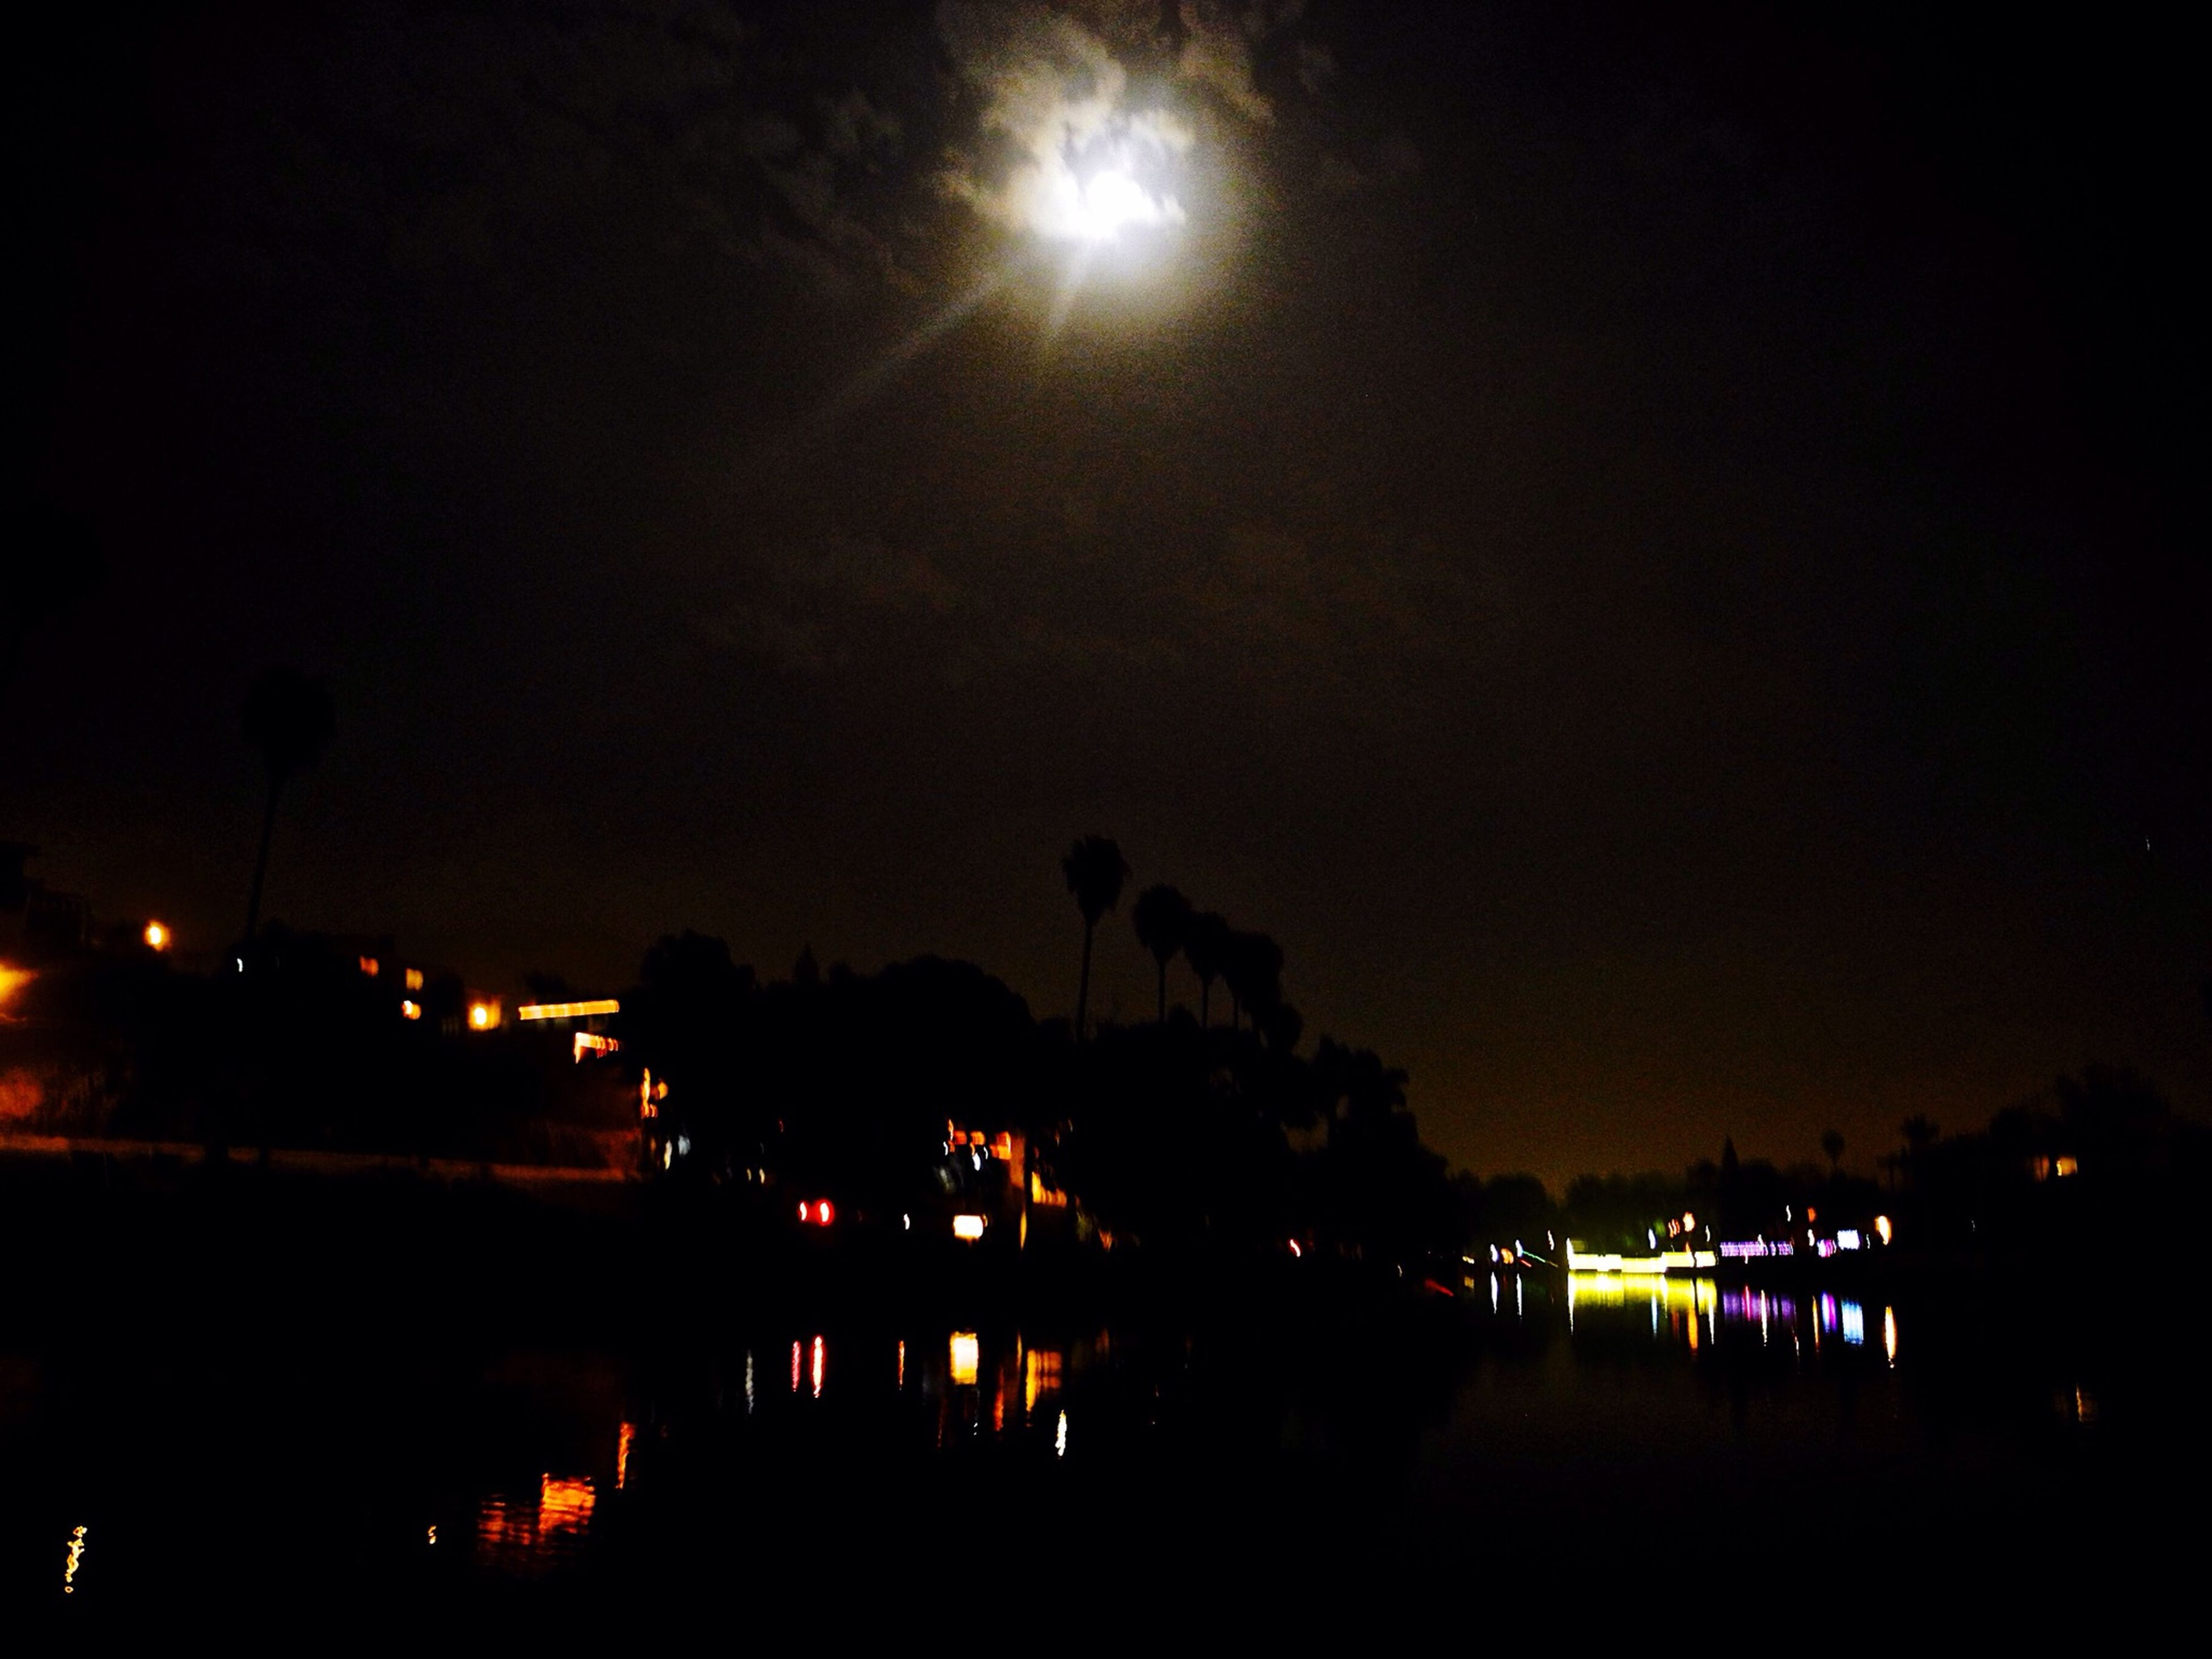 night, illuminated, water, sky, reflection, dark, moon, silhouette, tranquility, glowing, scenics, light - natural phenomenon, tranquil scene, lighting equipment, light, tree, nature, river, waterfront, beauty in nature